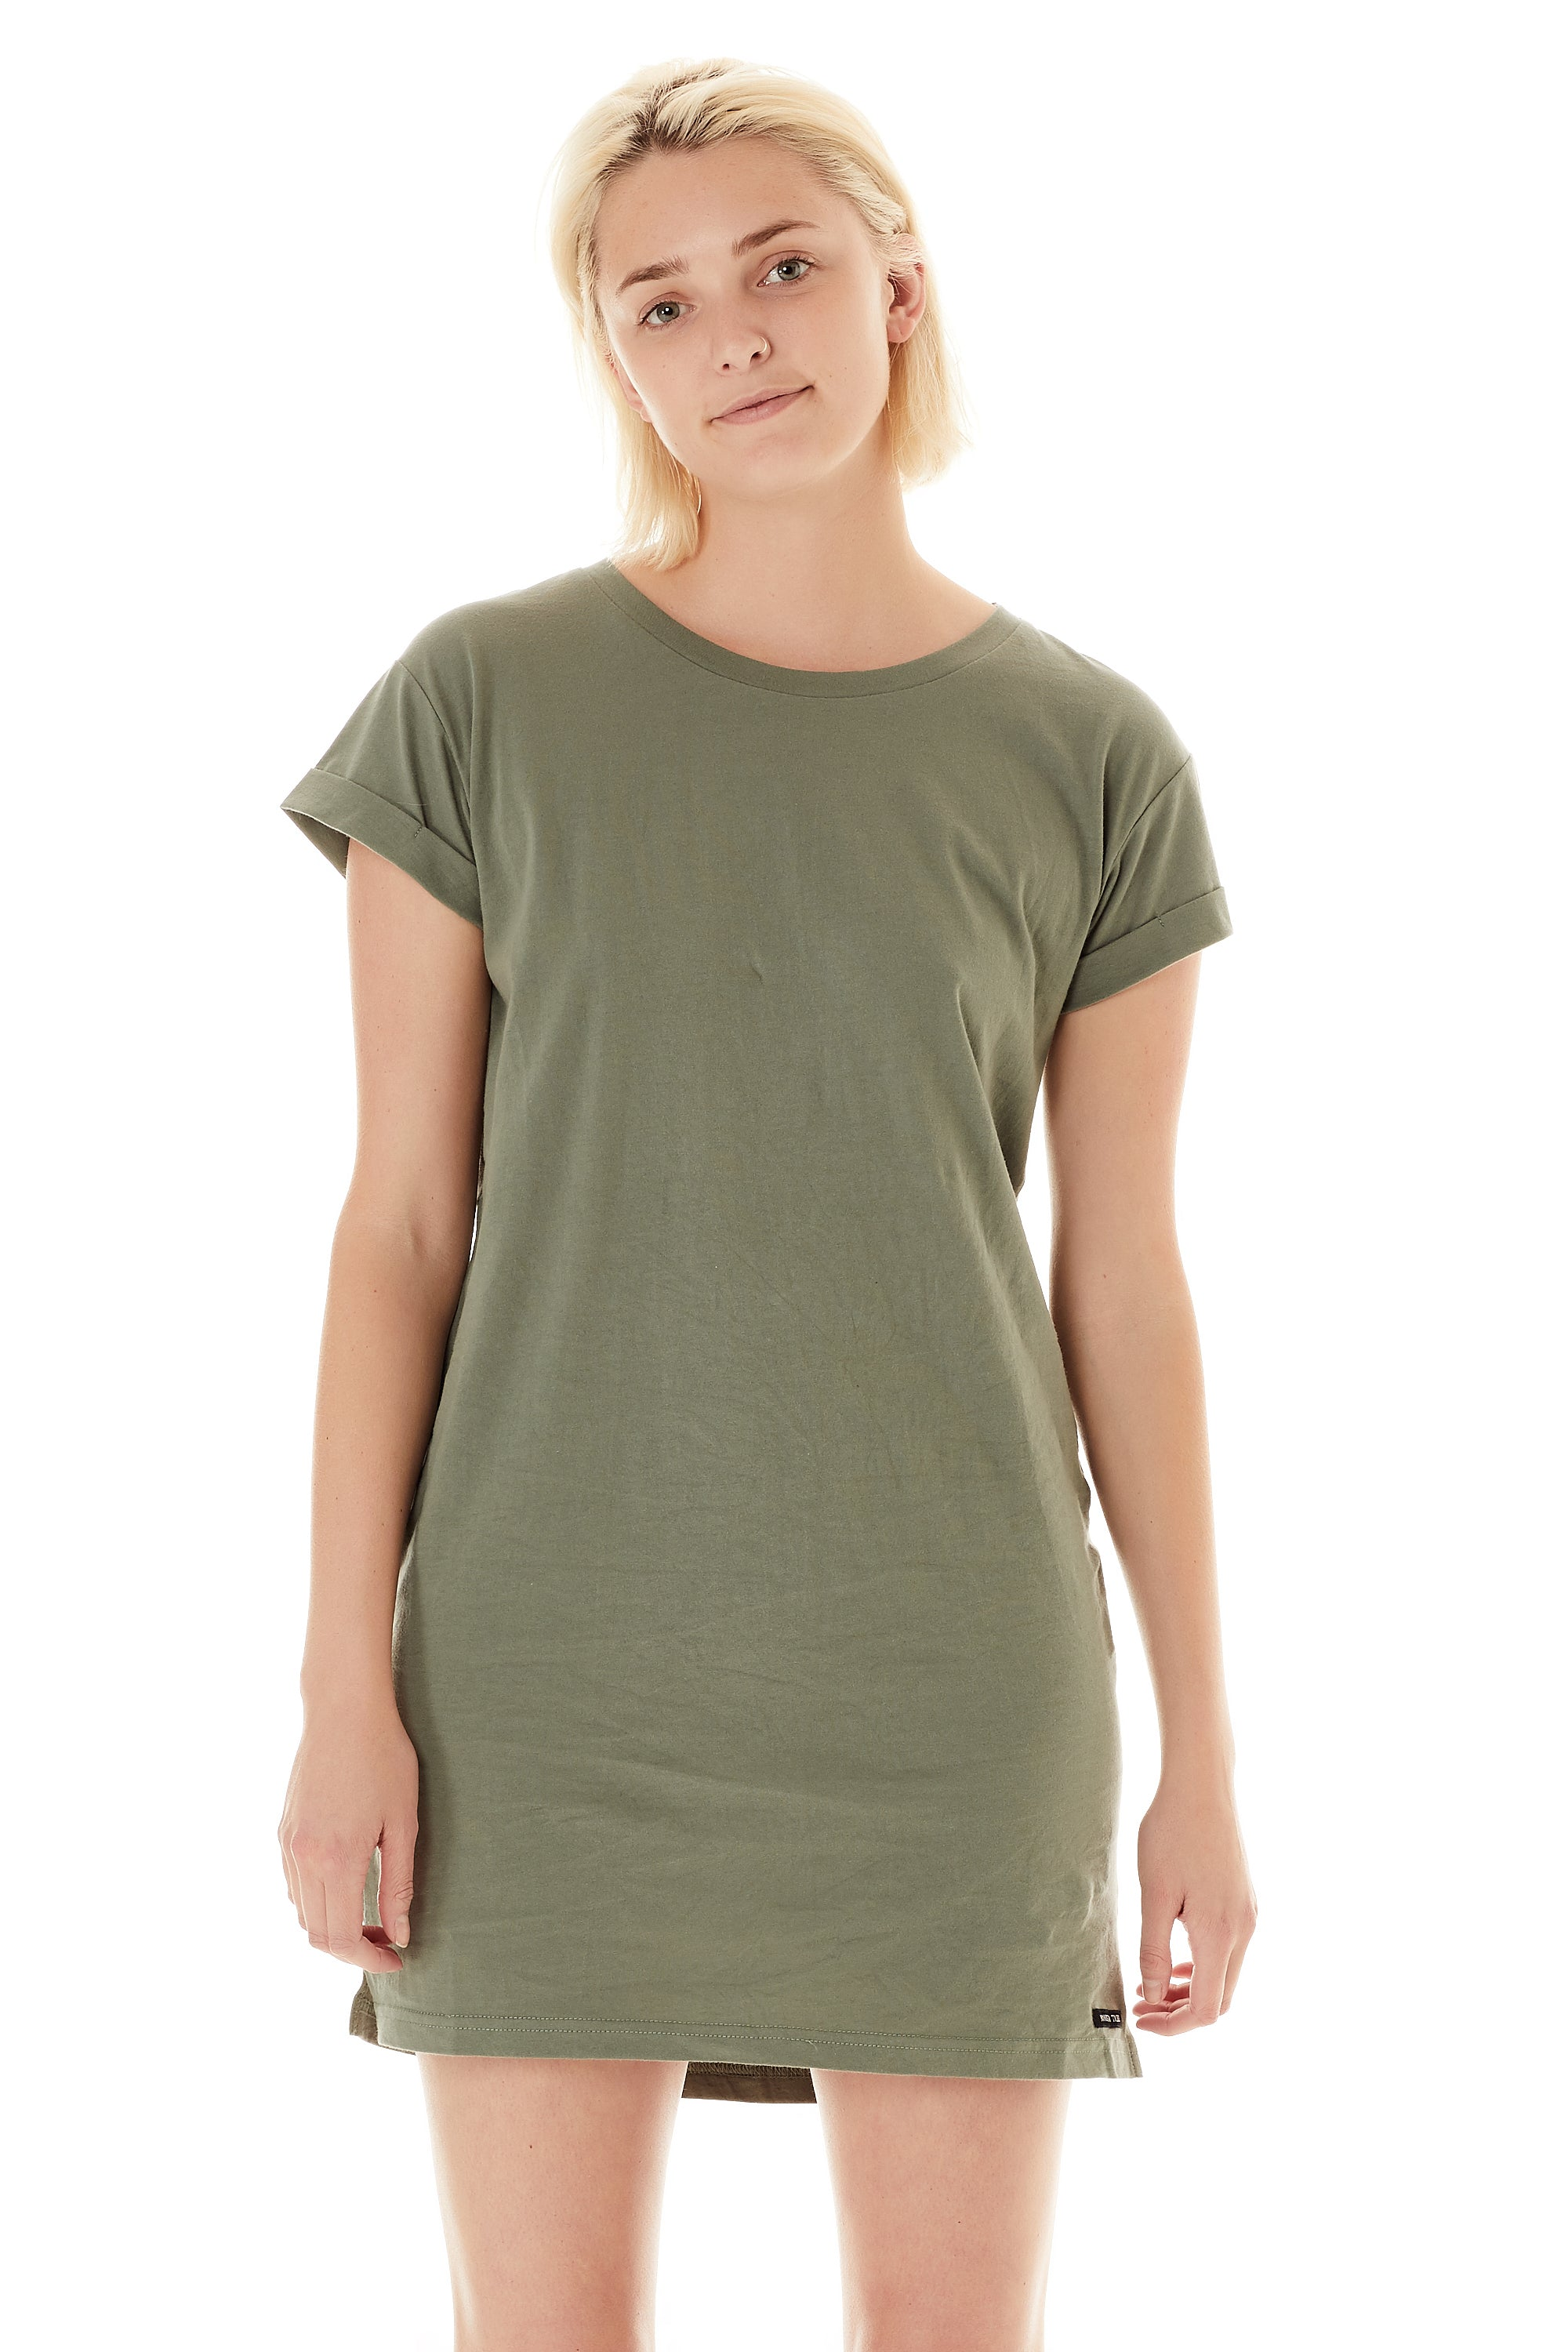 40b8878c07 Womens T-Shirt Dress Military Green